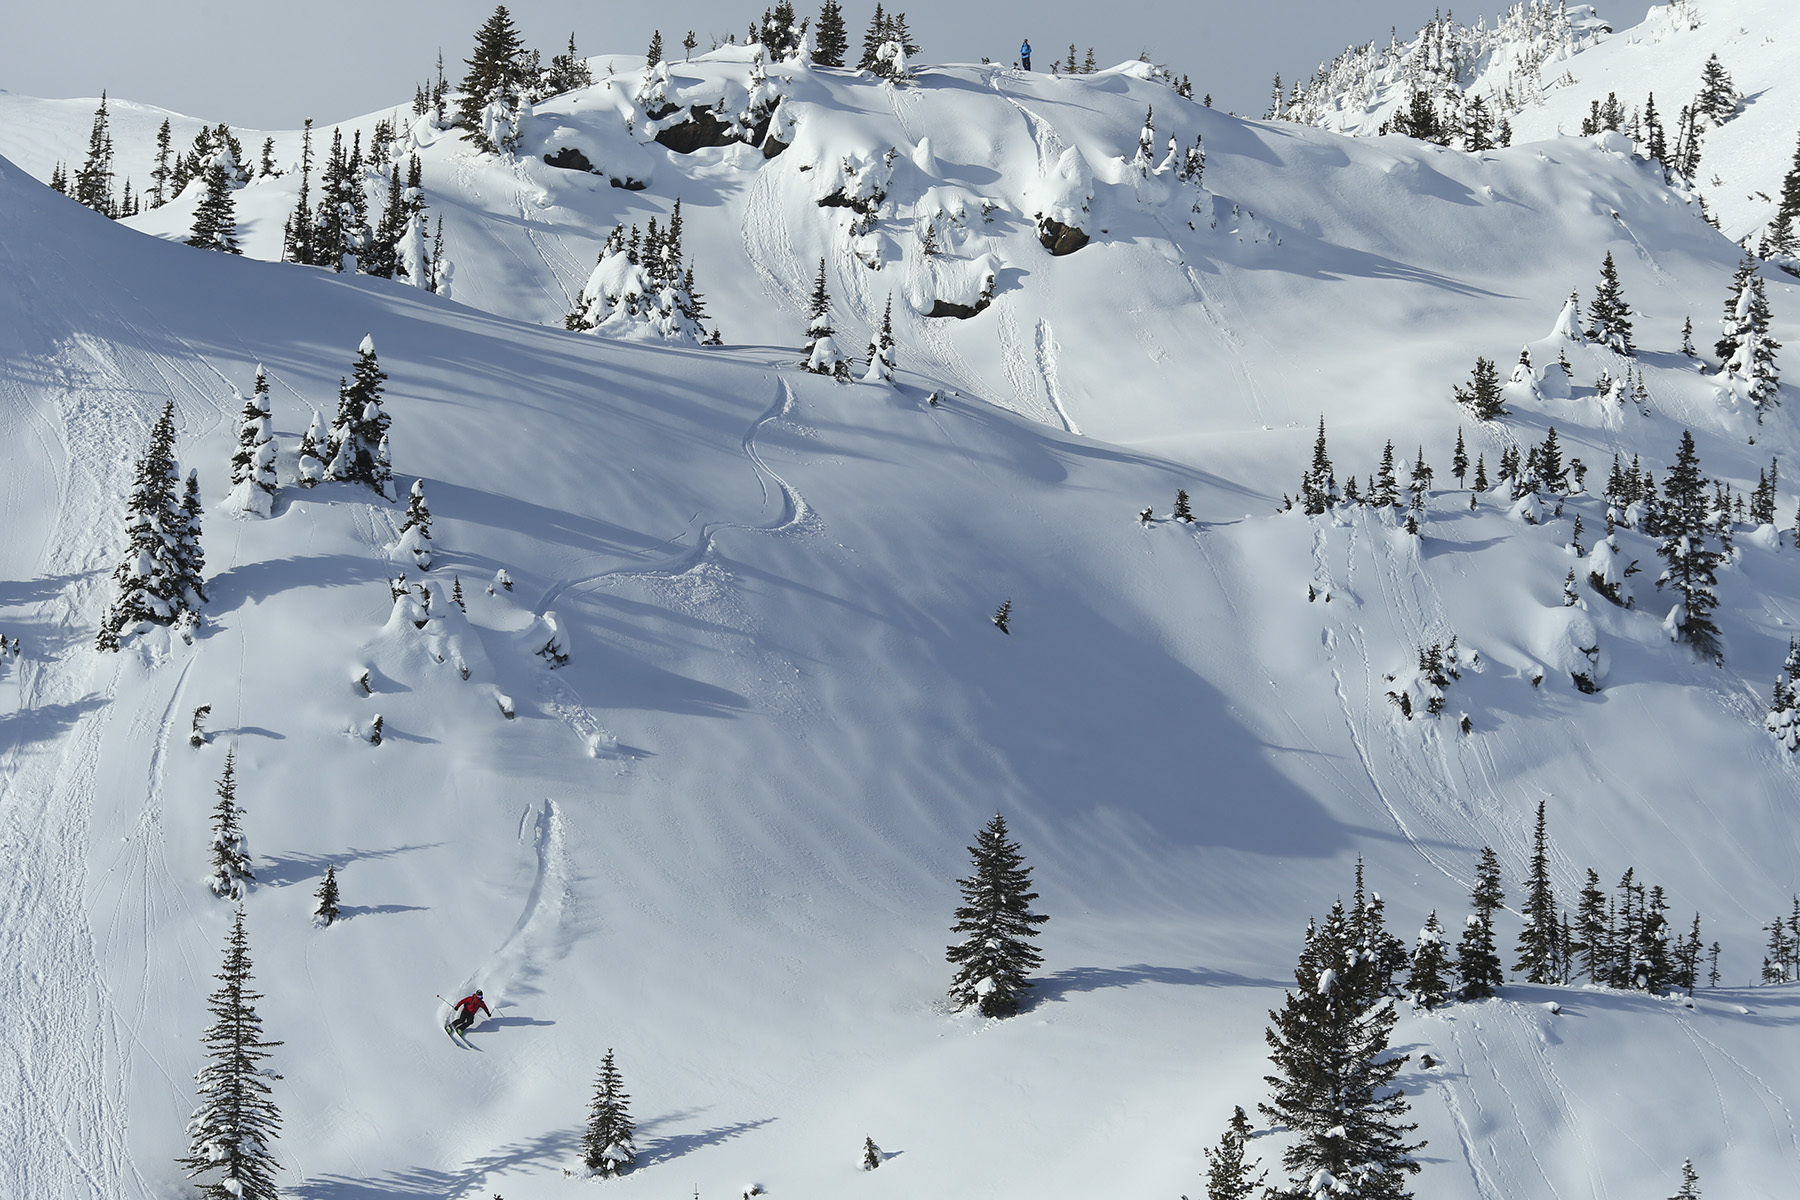 Austin Ross, Sunrise Lodge, Esplanade Range, BC, Canada